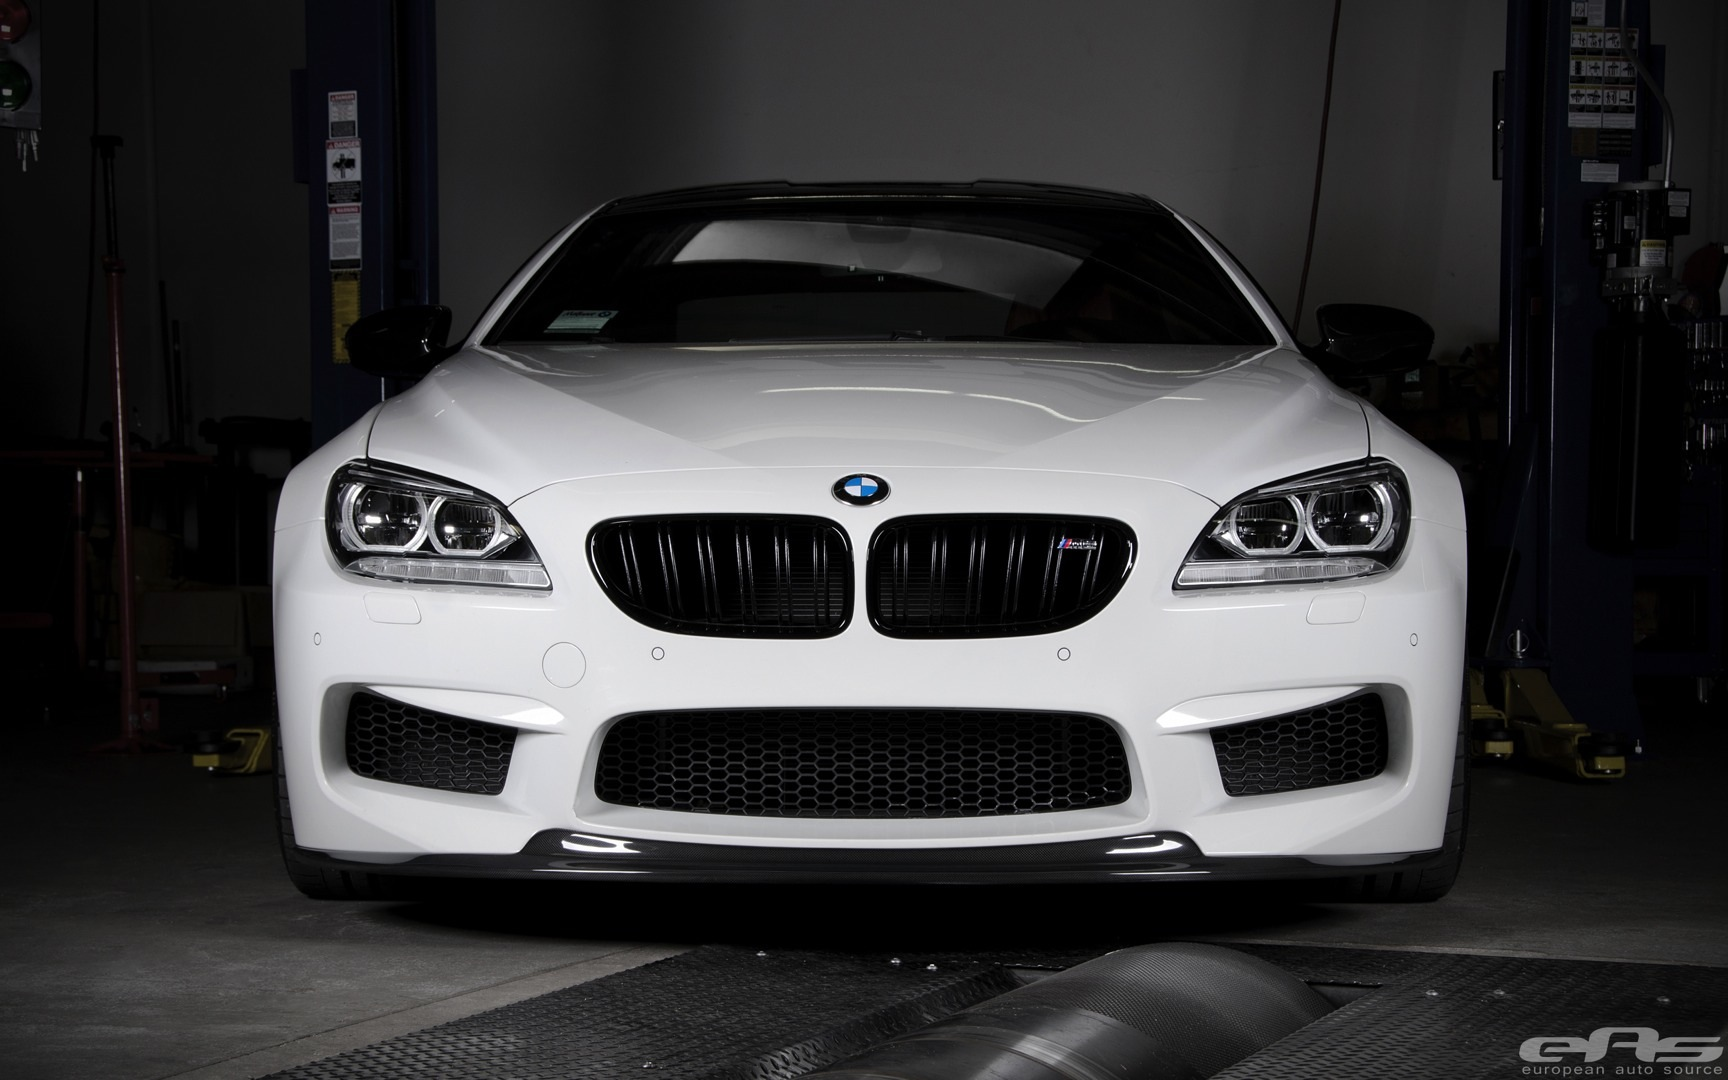 Tapis De Sol Tous Temps Sport Bmw Serie F F F moreover Stunning Alpine White Bmw M Gran Coupe Gets Arkym Body Kit Photo Gallery also Car F Cf D B as well Ef D A C Af Ab B B additionally Bmw M E Mp Pic. on 2014 bmw m6 gran coupe